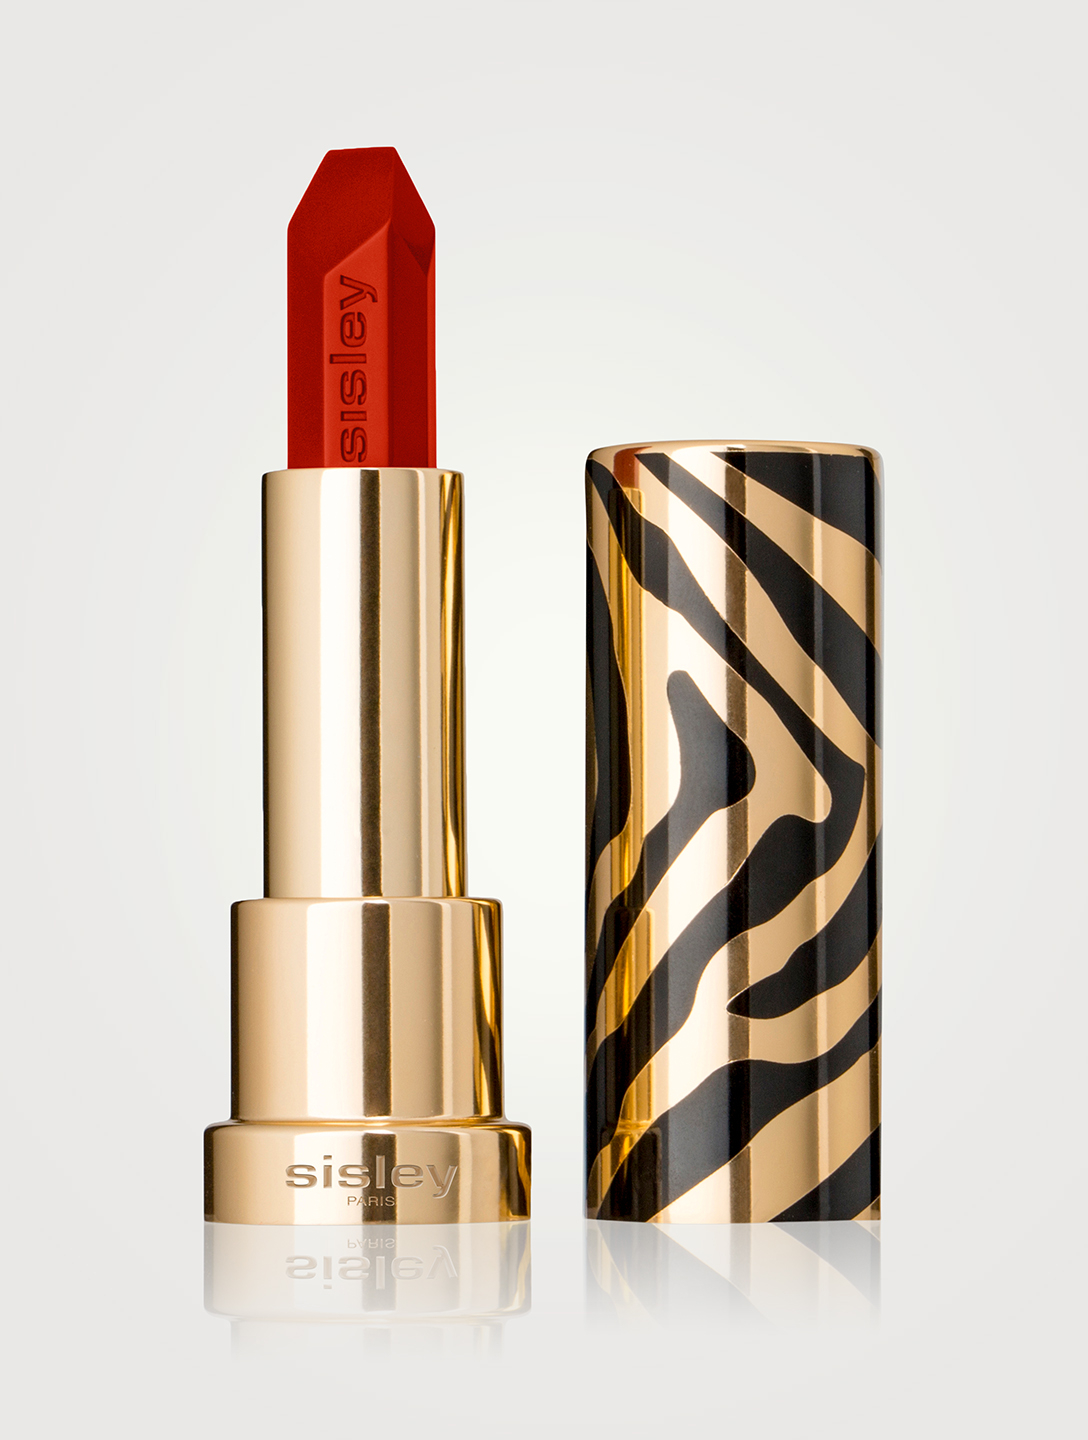 SISLEY-PARIS Le Phyto Rouge Lipstick Beauty Red